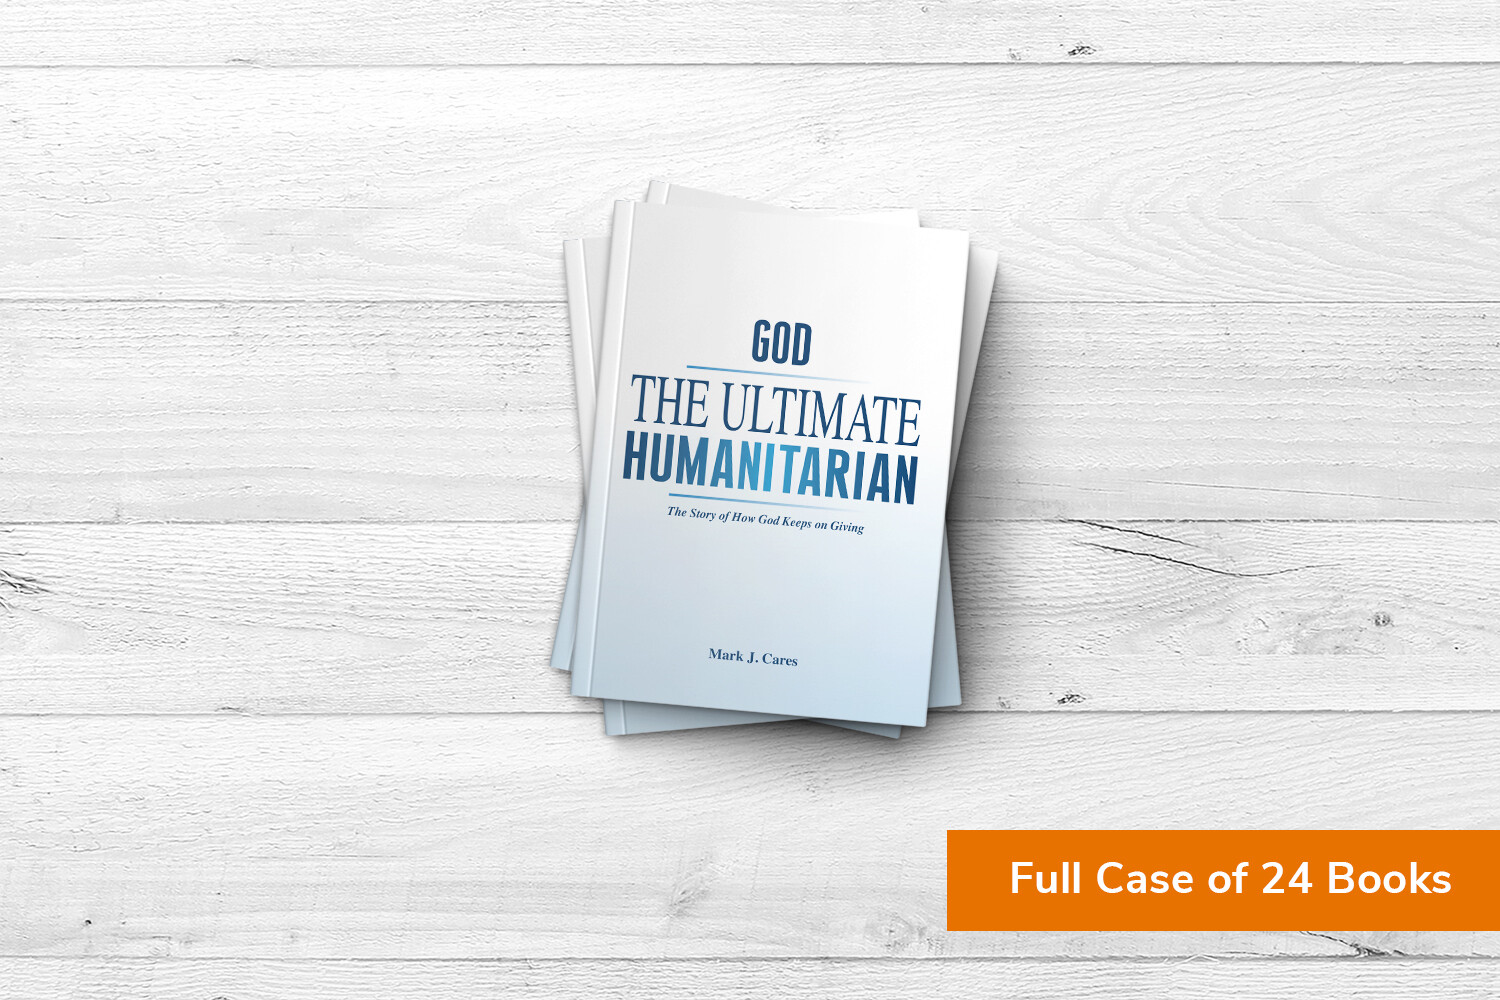 God - The Ultimate Humanitarian by the case